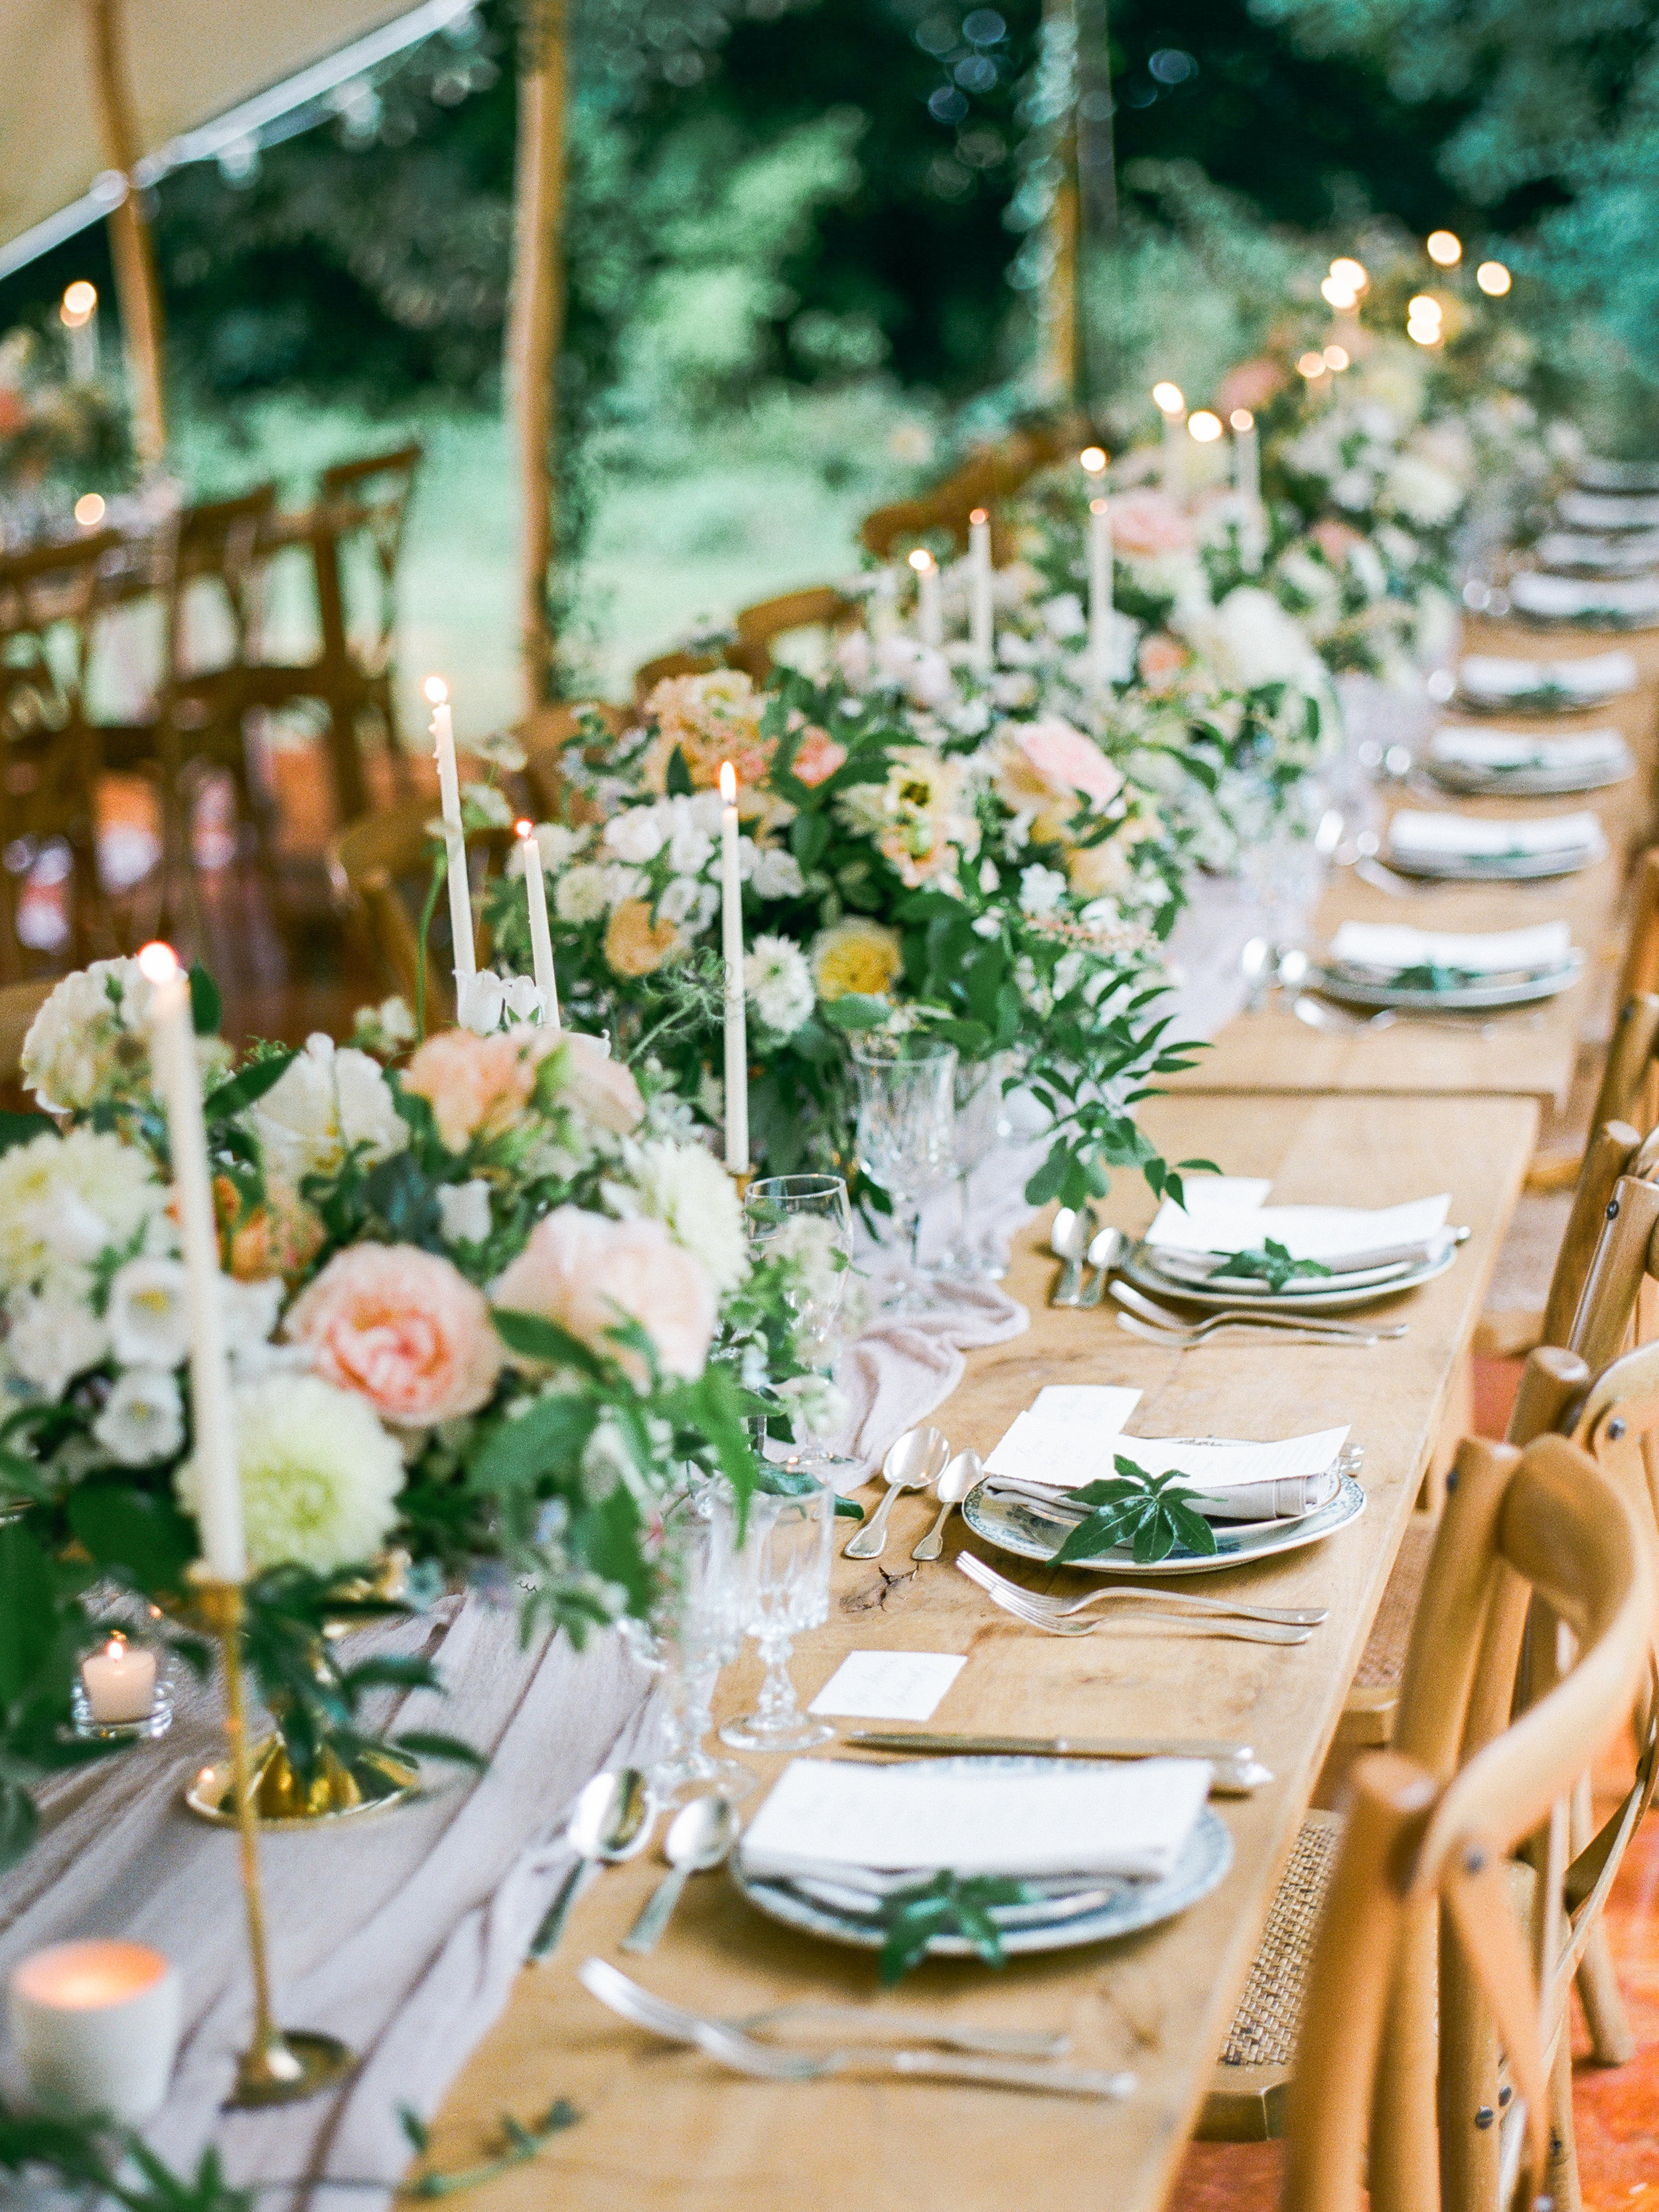 fine art wedding florist, foraged floral, french wedding at a chateau with pink and white flowers.jpg